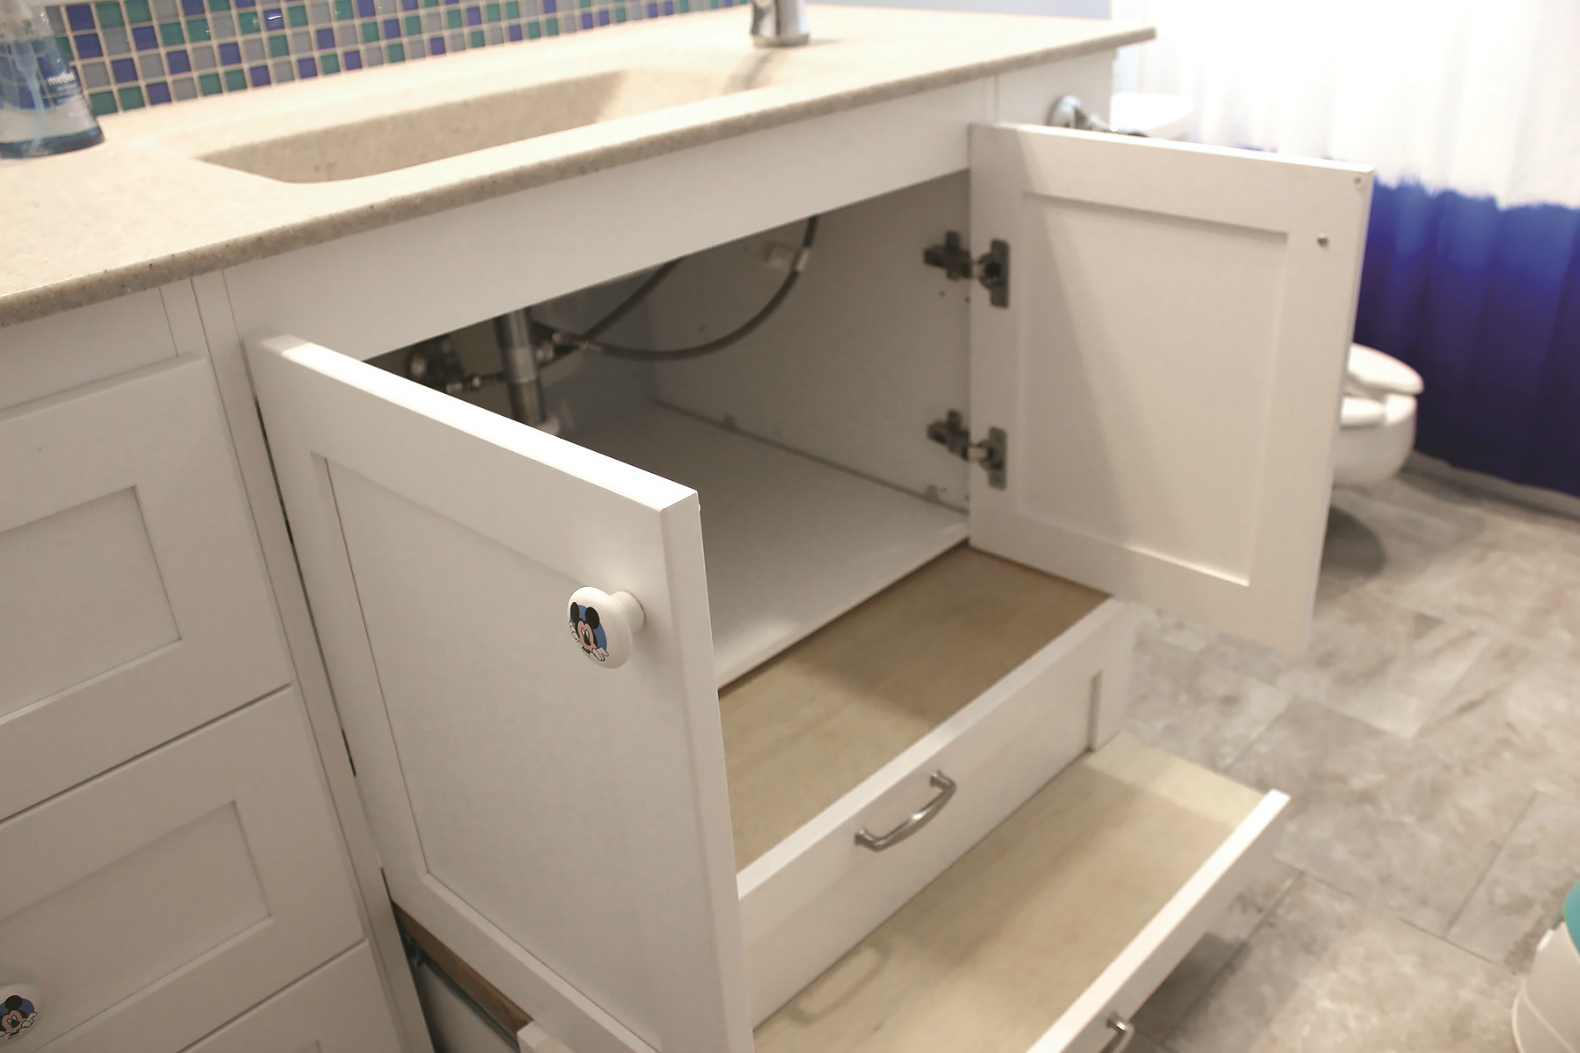 Clever Bath Vanity Design Helps Give Special Needs Child